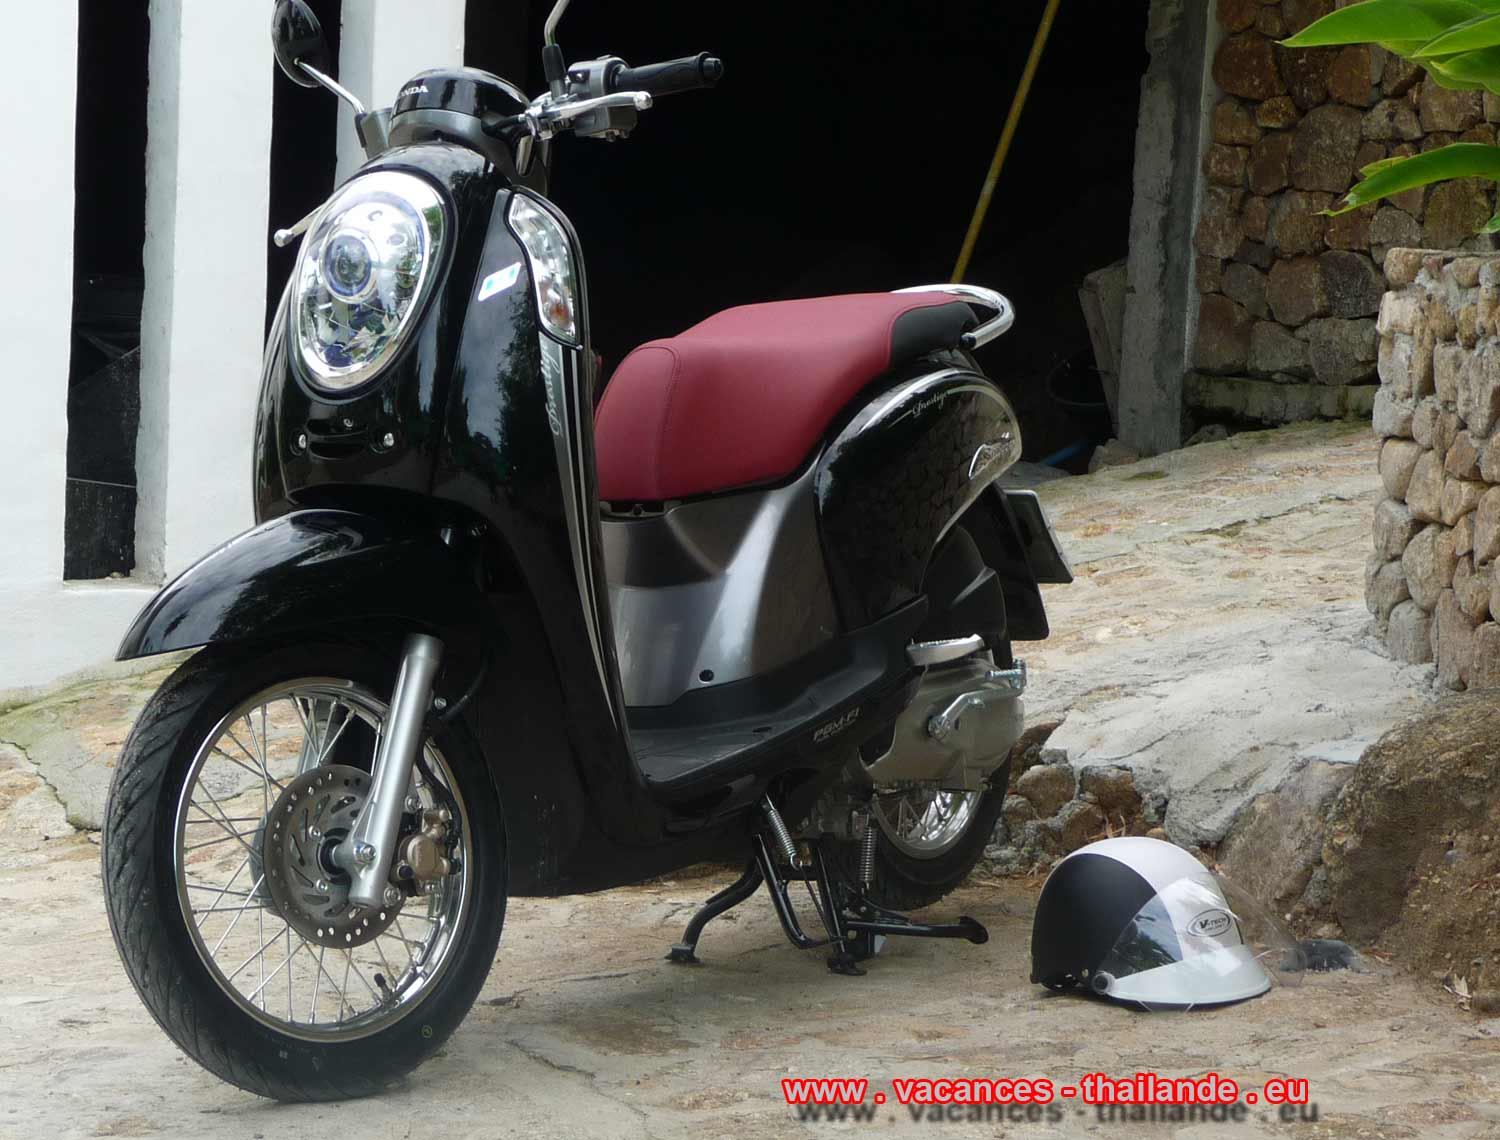 p32 scooters Honda leased the house and are available on arrival and especially without formalities so called resting ansi that helmets has samui koh thailand